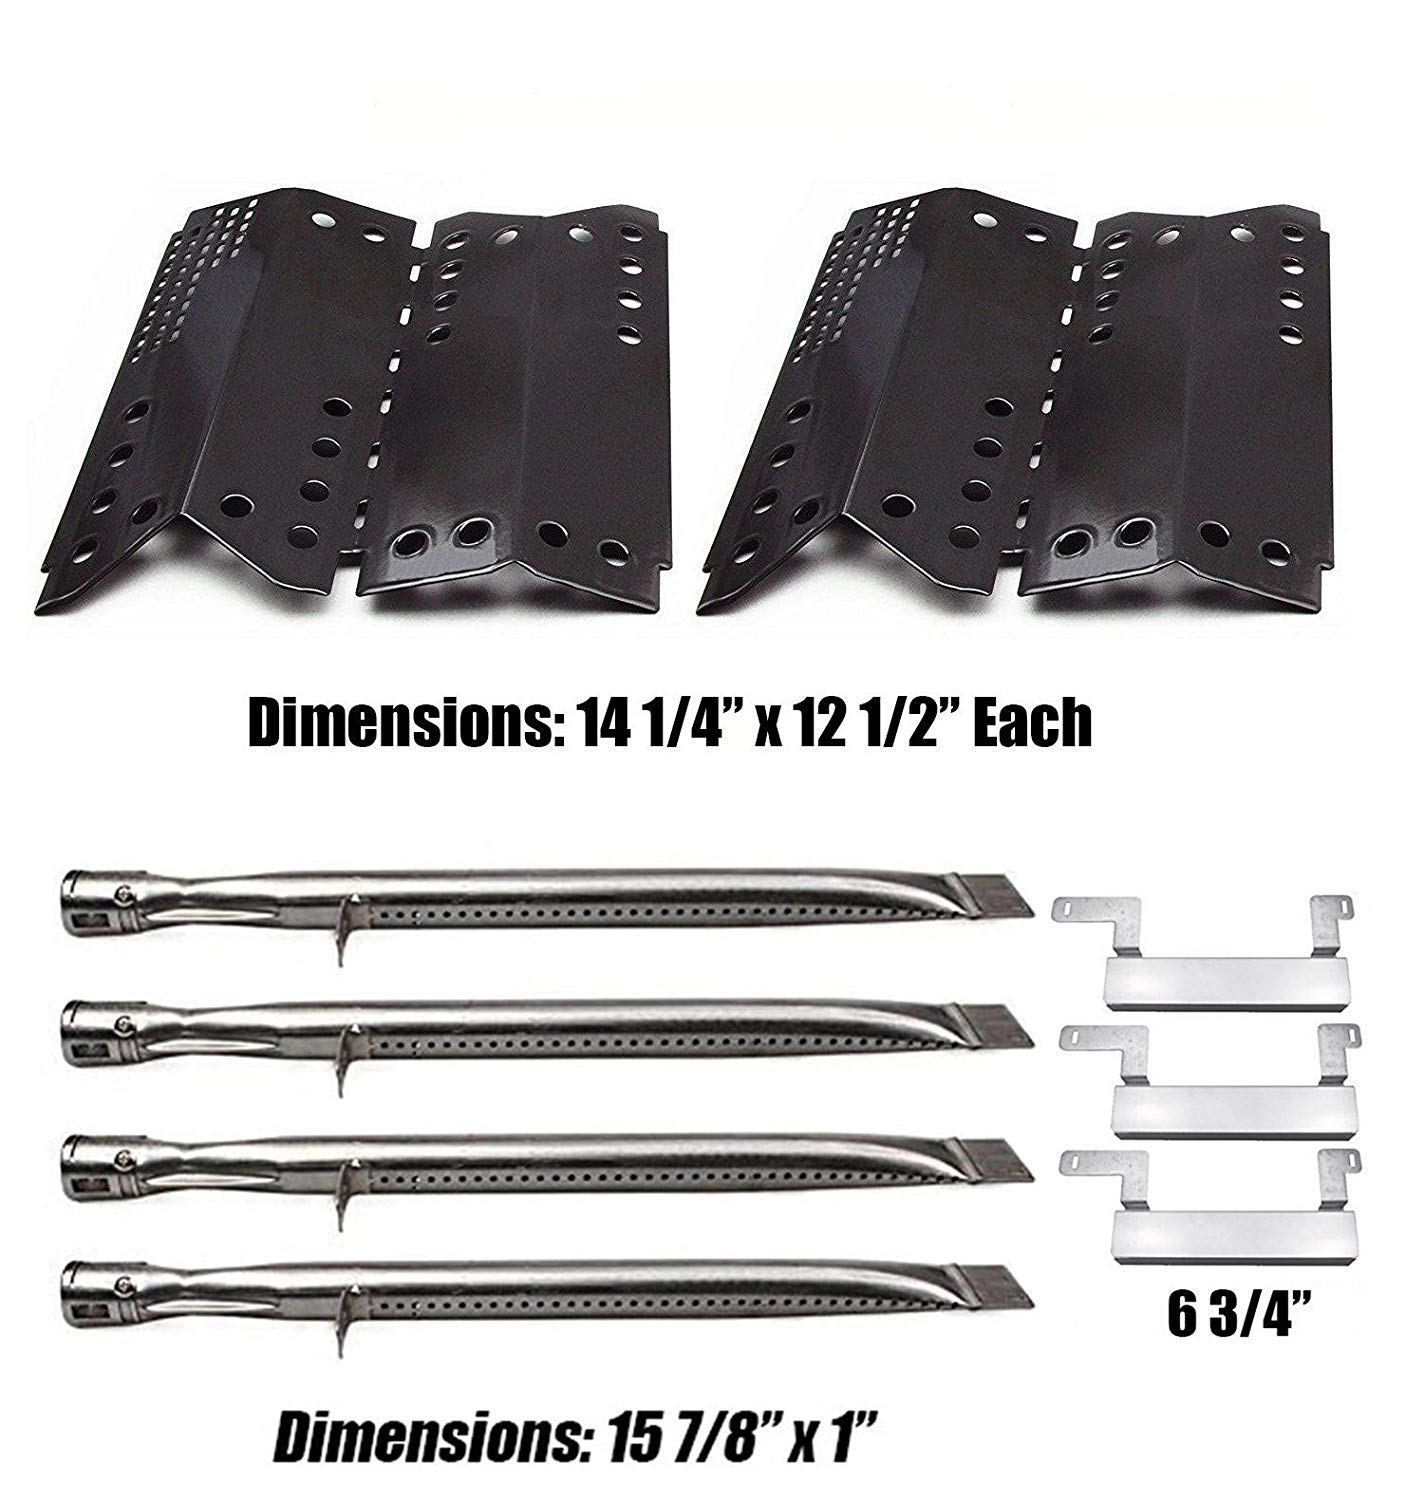 Grill Valueparts Grill Parts Kit for Stok SGP4330SB, SGP4330, SGP4130N, Stok Quattro 4 Burner Grills - 15 7/8 x 1 Stainless Burner, Porcelain Heat Shield, and Crossover Tube by Grill Valueparts